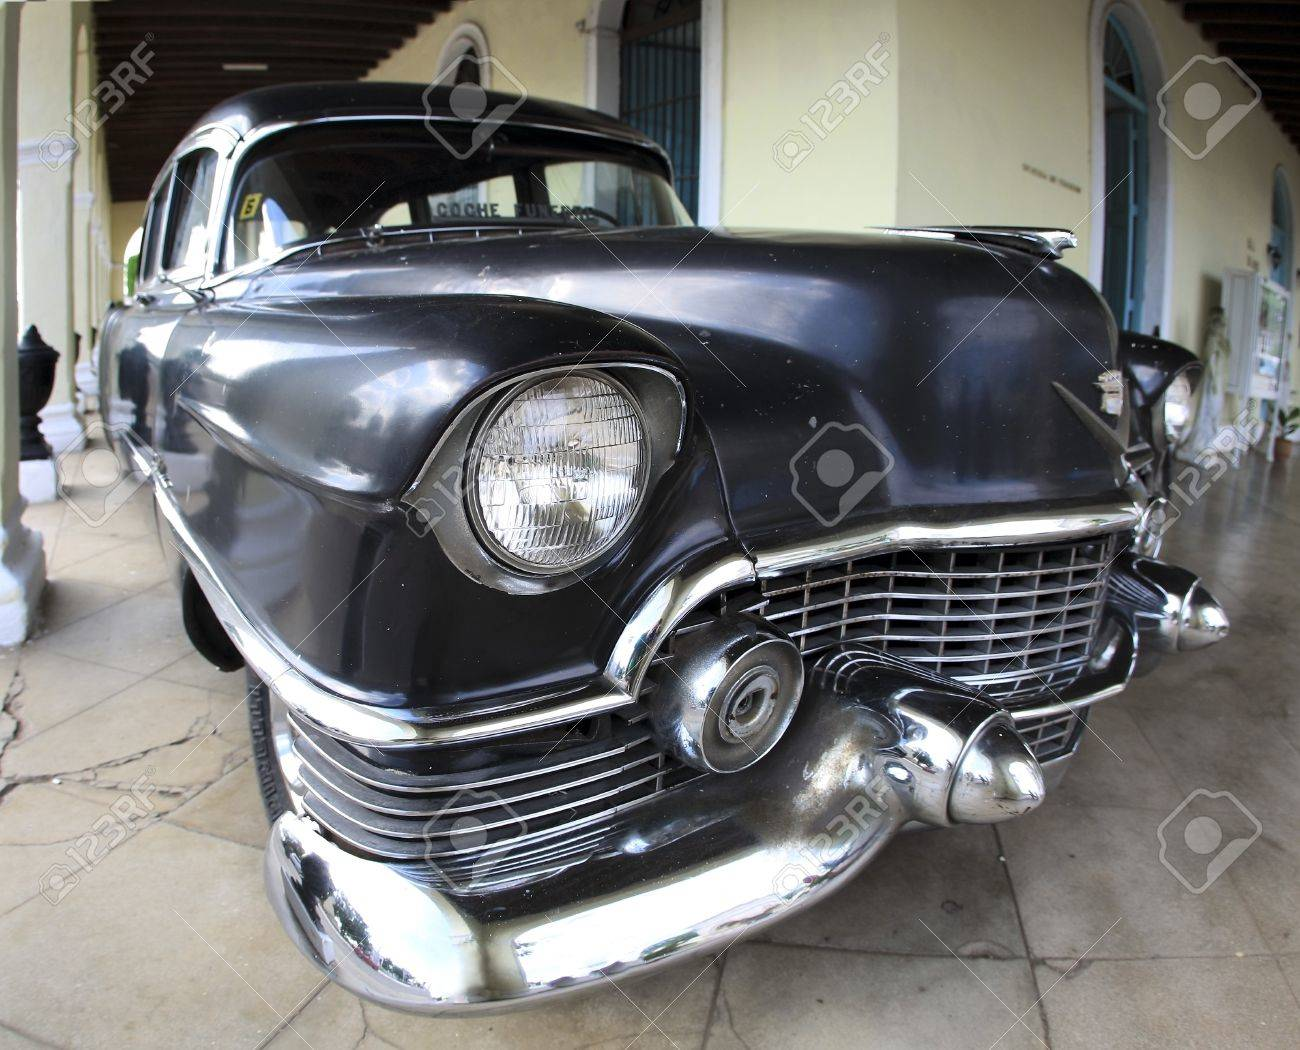 HAVANA - JAN 25: Front View Old Car 1950 Year Cadillac Deville ...